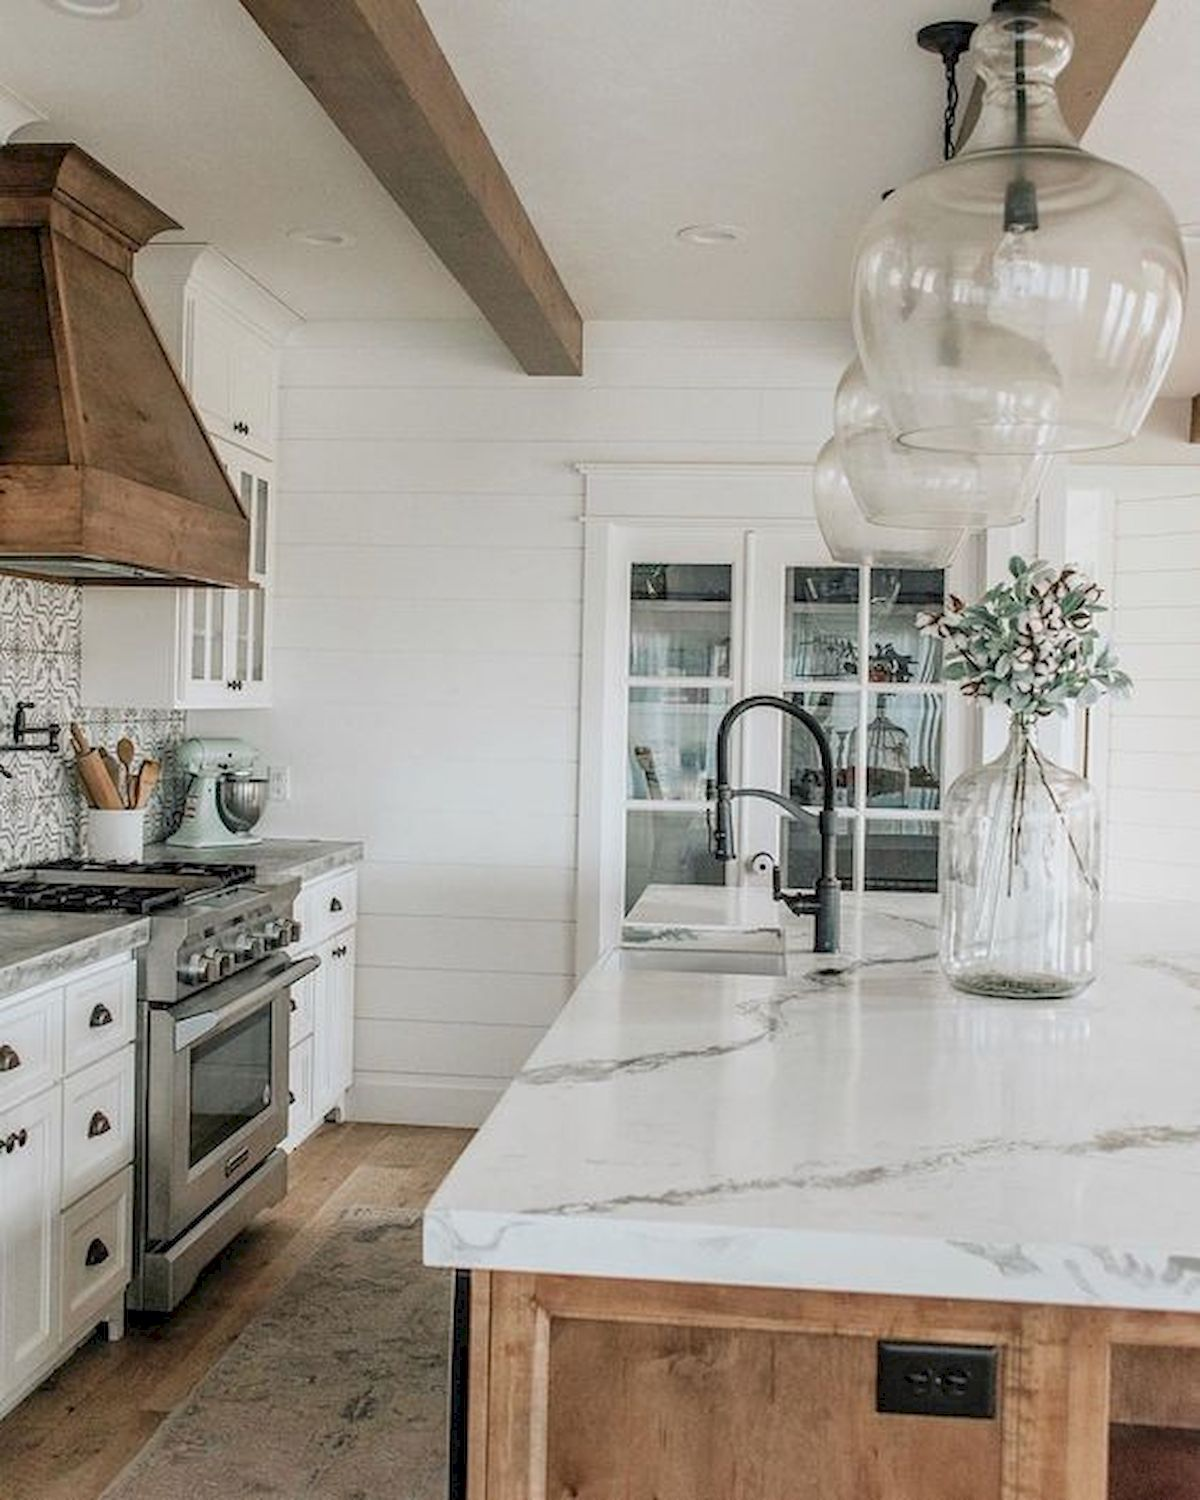 60 Great Farmhouse Kitchen Countertops Design Ideas And Decor #farmhousekitchencountertops